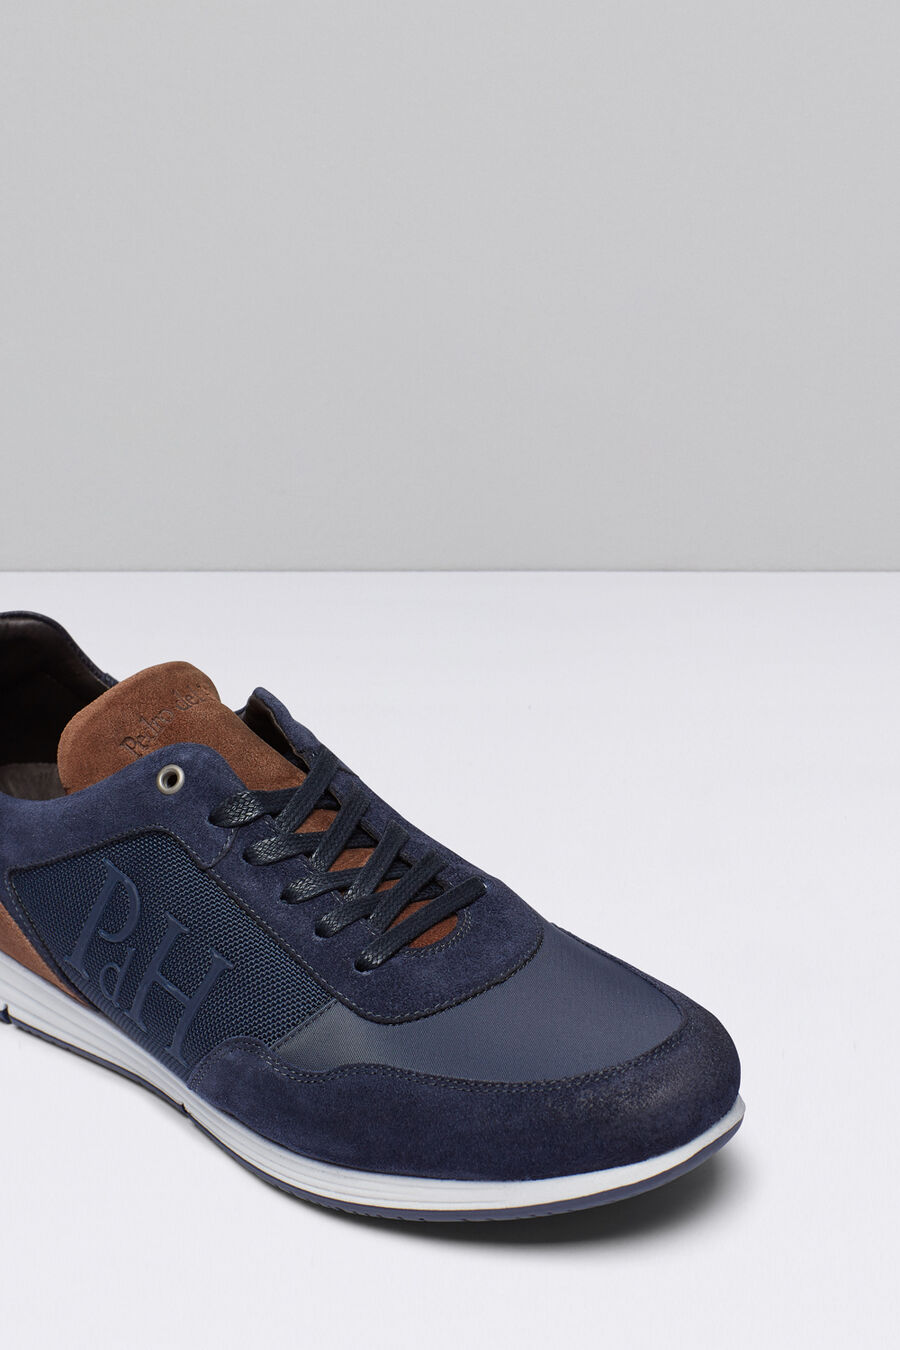 Leather and nylon icon sneakers